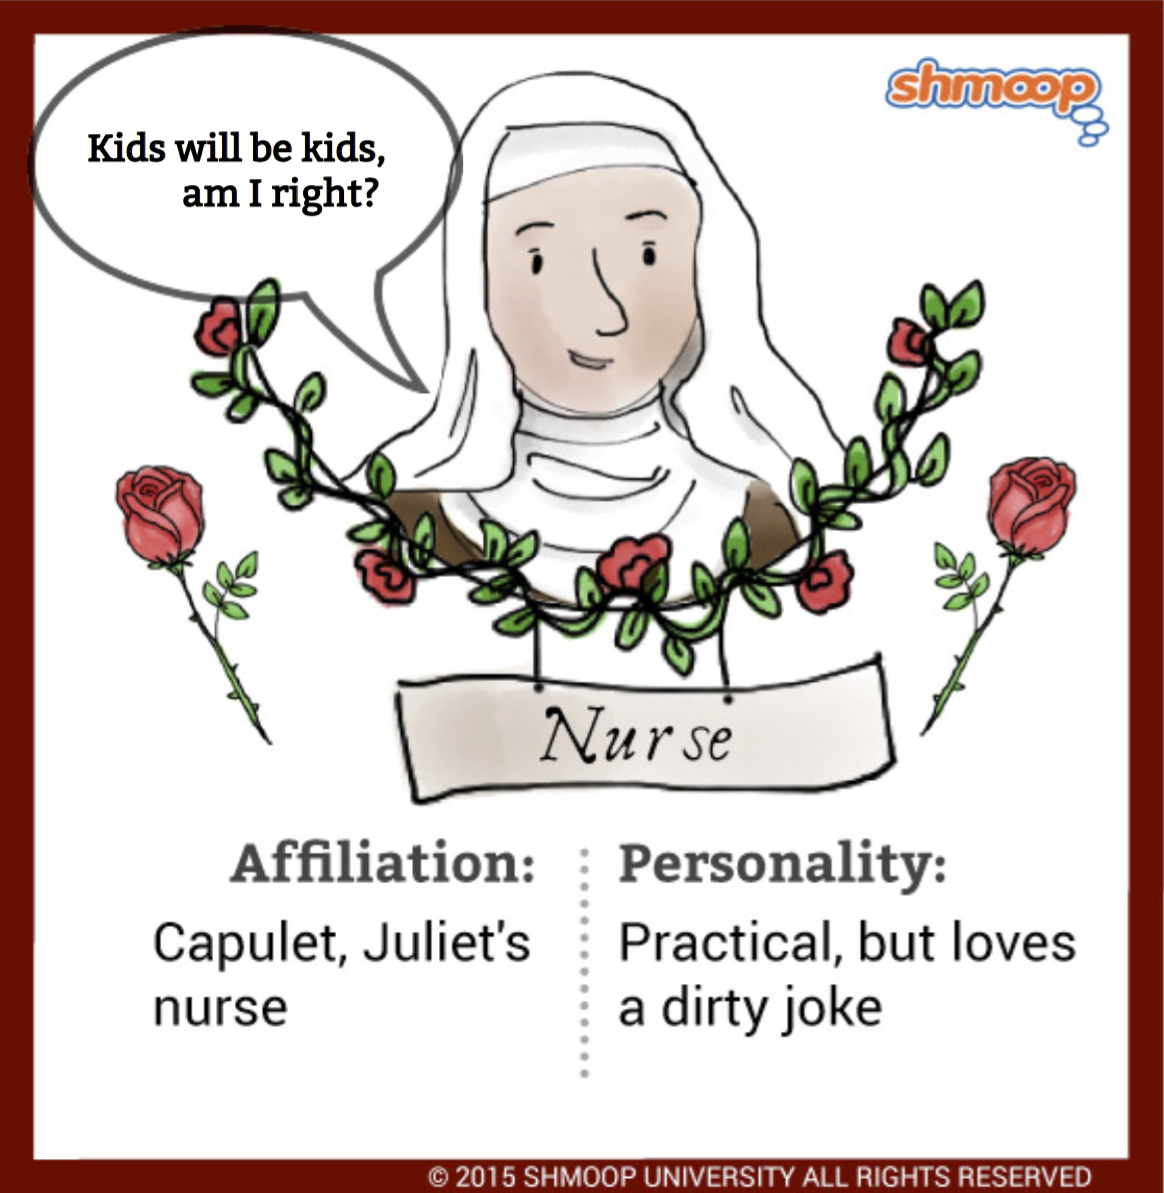 Romeo And Juliet Quotes And Meanings Inspiration The Nurse In Romeo And Juliet